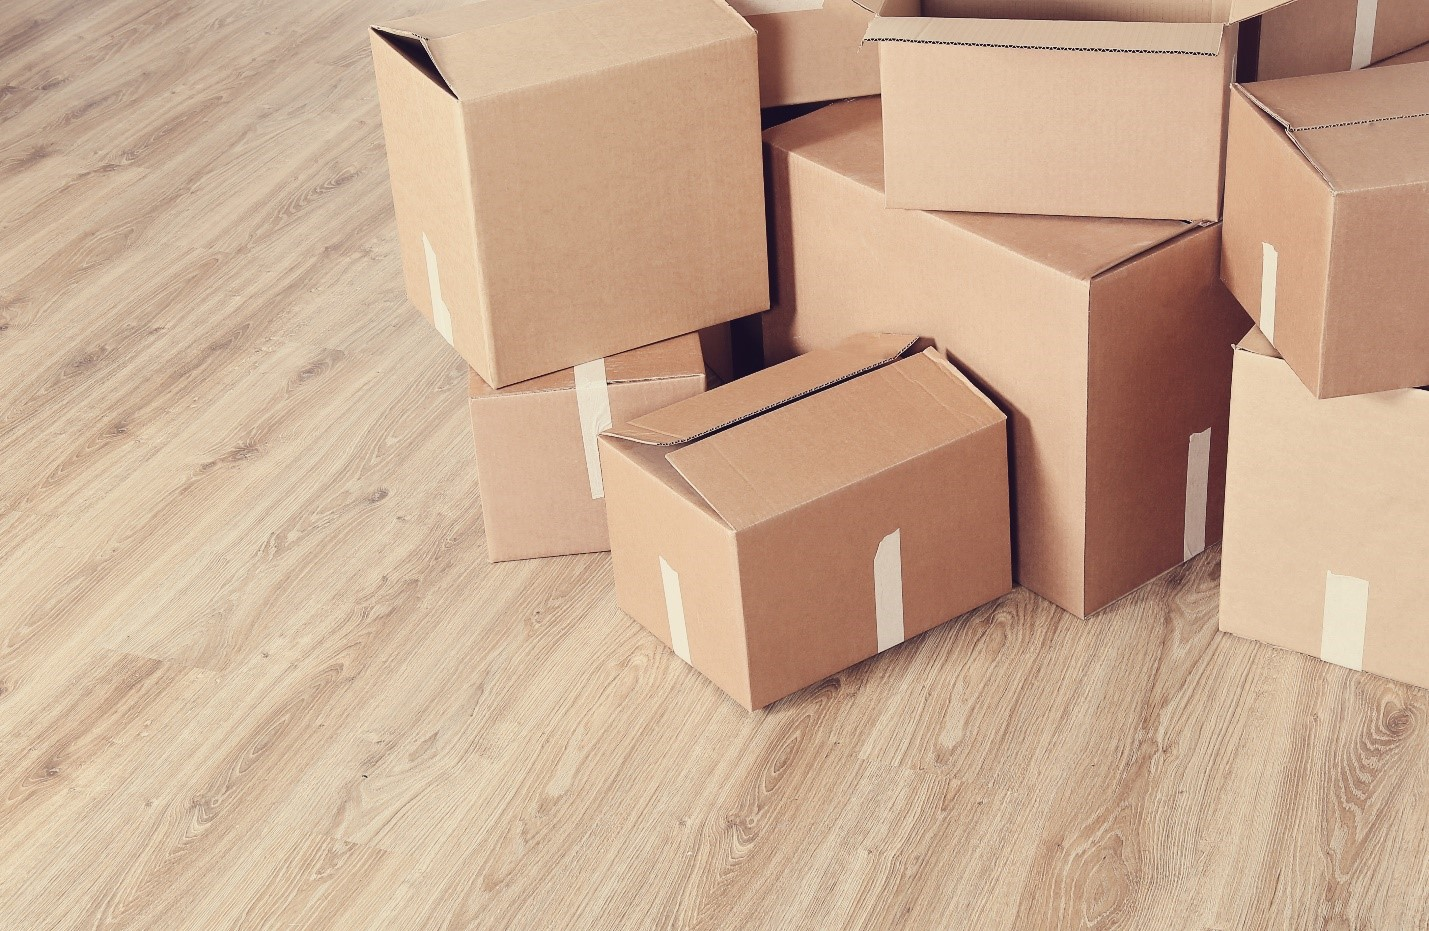 Make Your Dream Come True – Move in Chicago & Hire The Experts for Moving and Storage